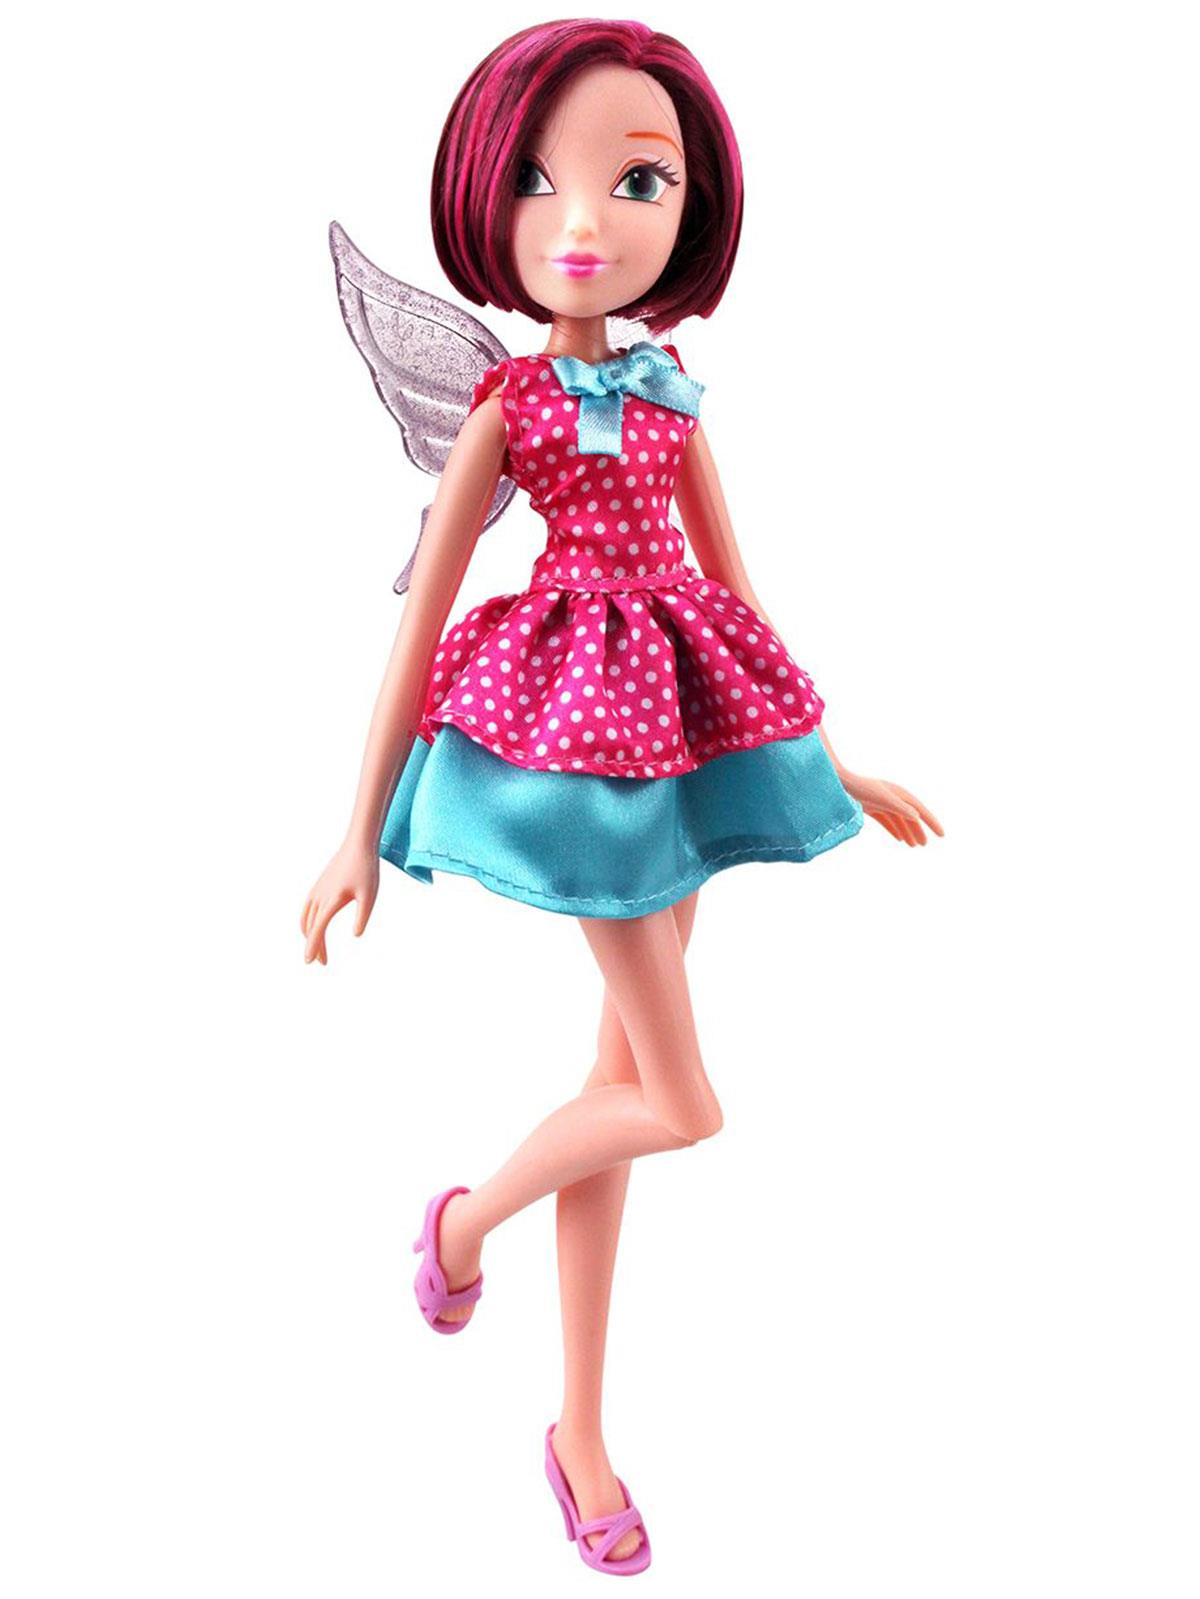 Wxd1531800 Std 4 Winx Club Chef Chic Tecna Fusya